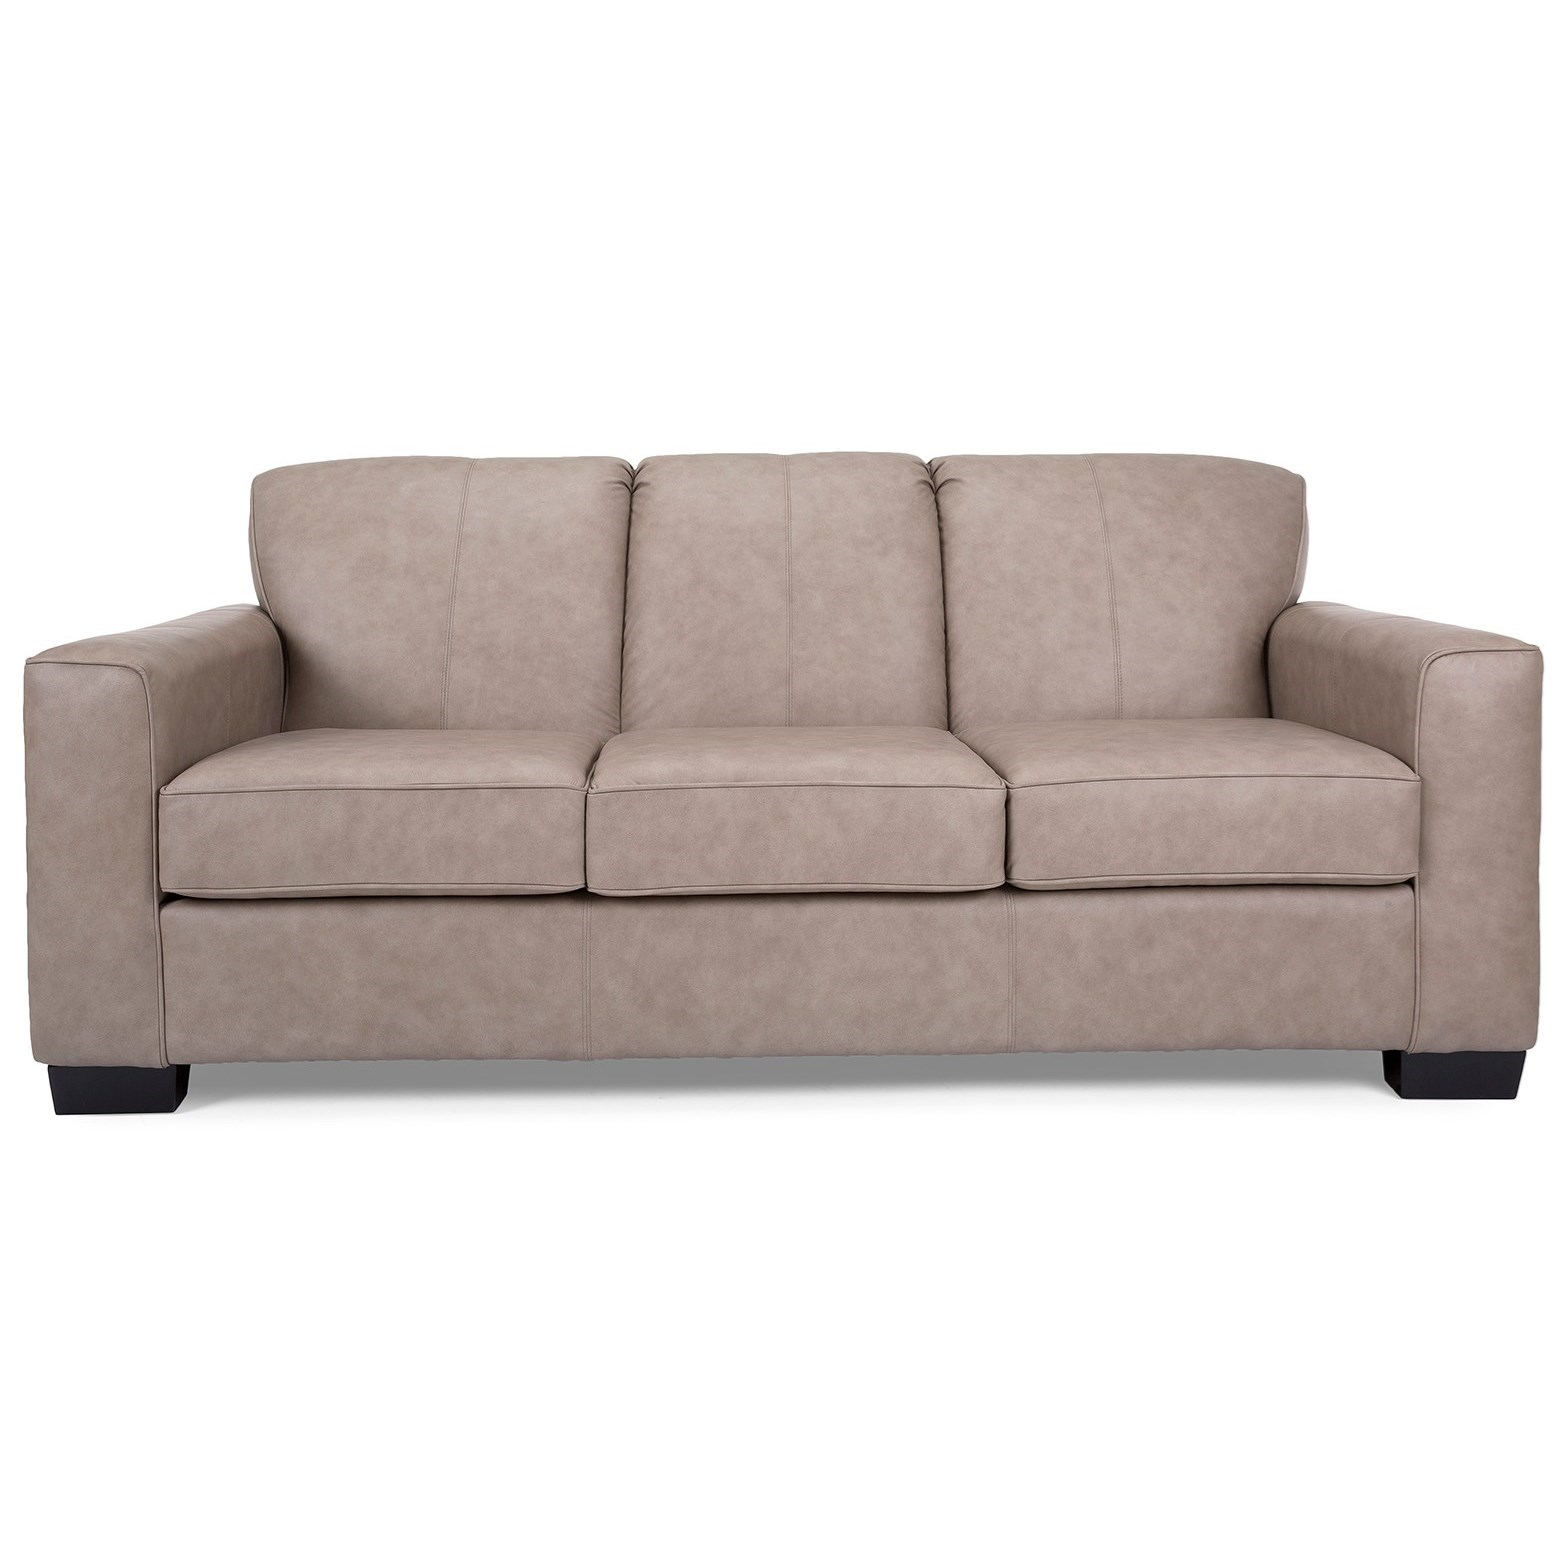 2705 Sofa Sleeper by Decor-Rest at Rooms for Less